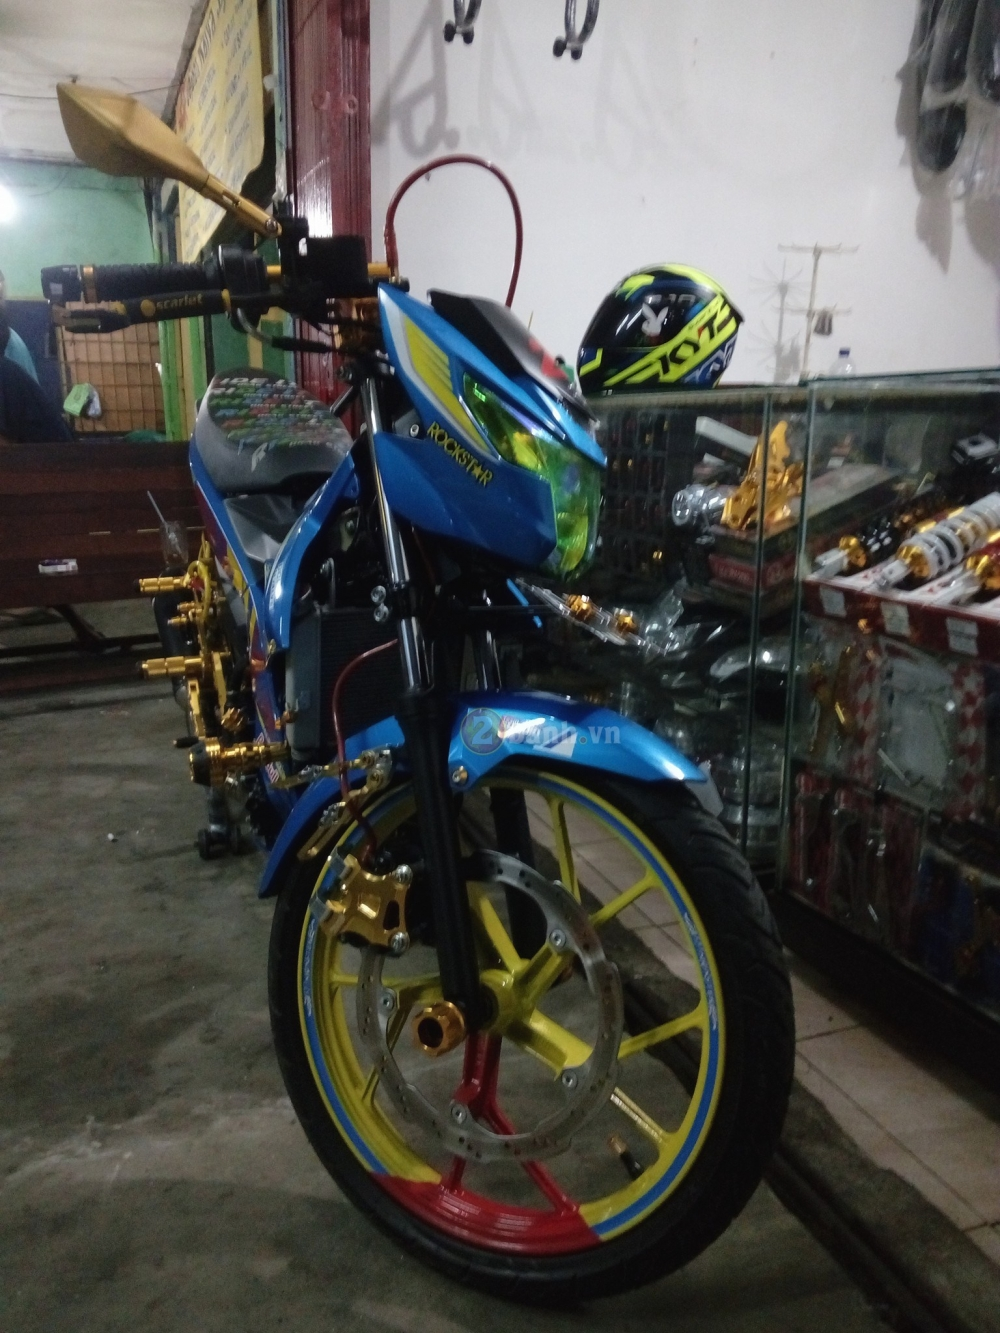 Satria F150 Fi do lung linh voi rat nhieu do choi chat - 7